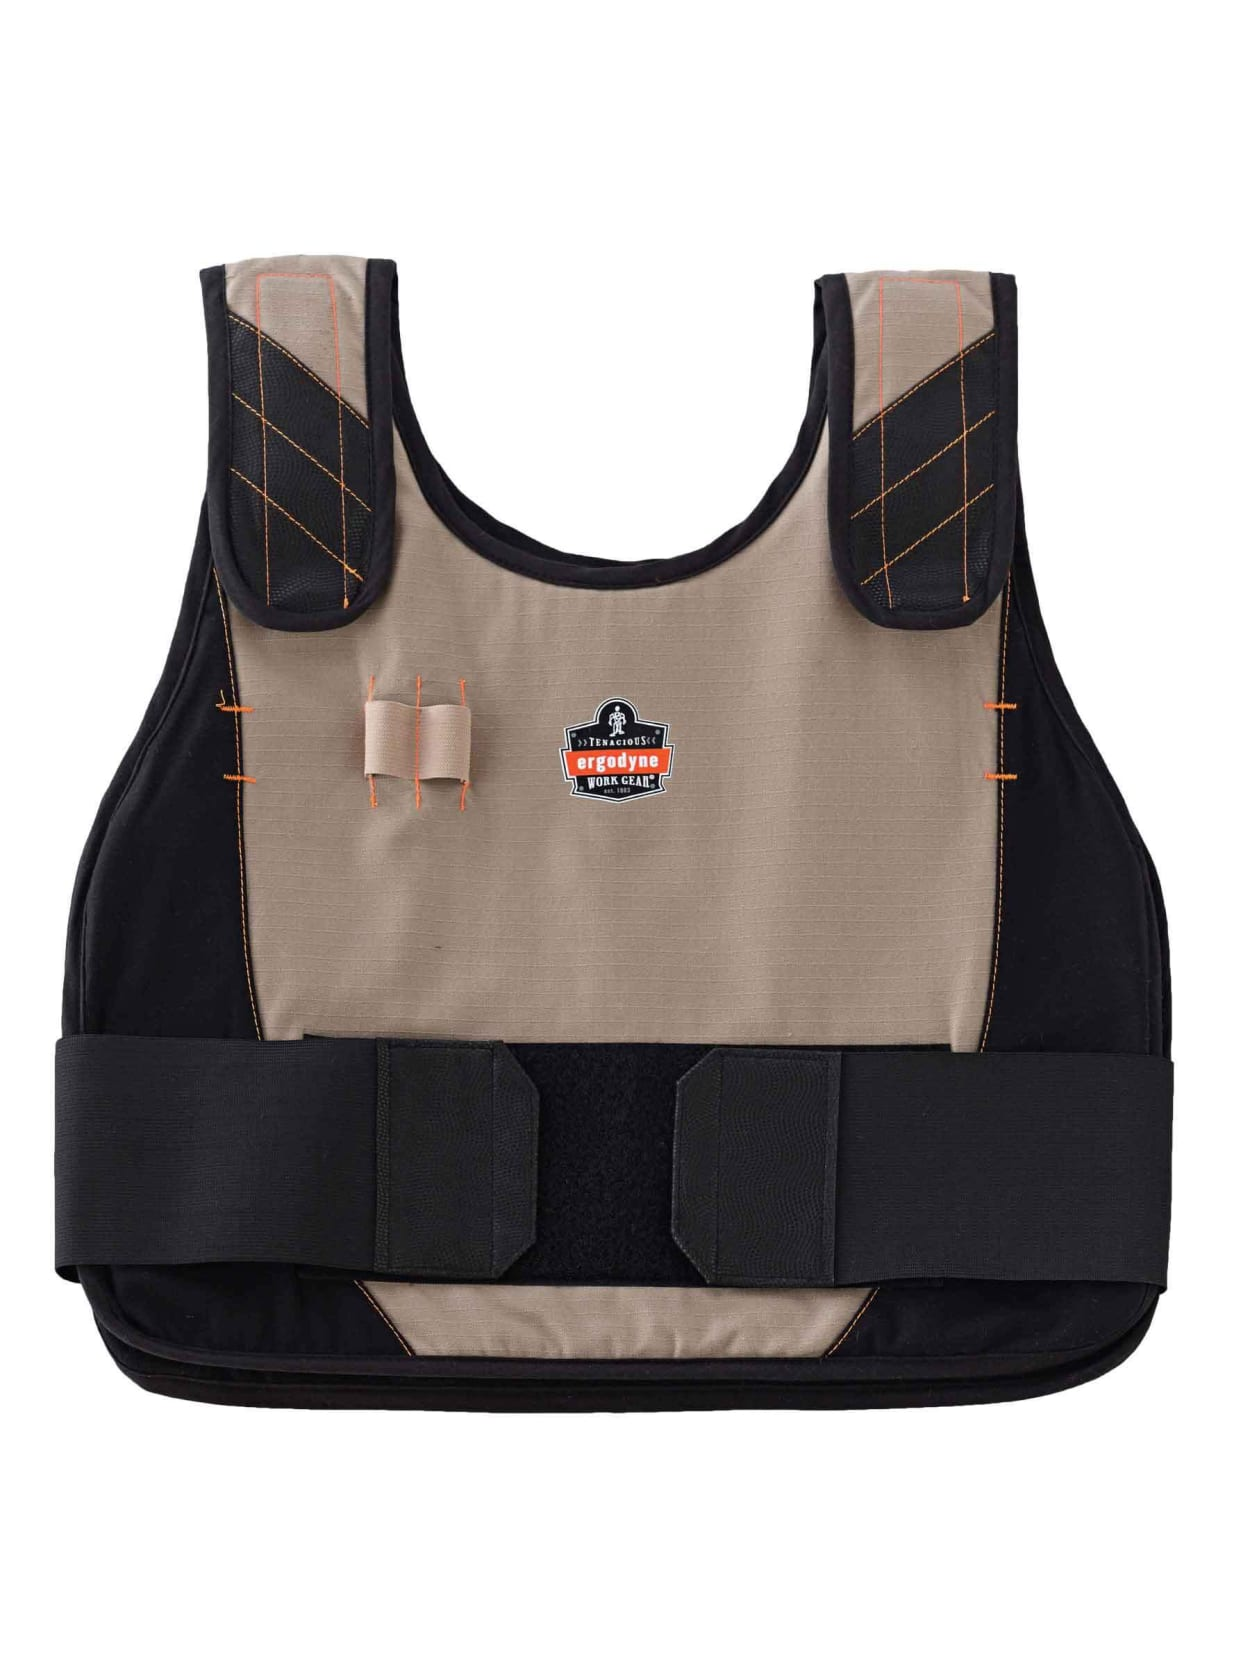 Chill-Its 6250 Phase Change Cooling Vest Packs Set of 4